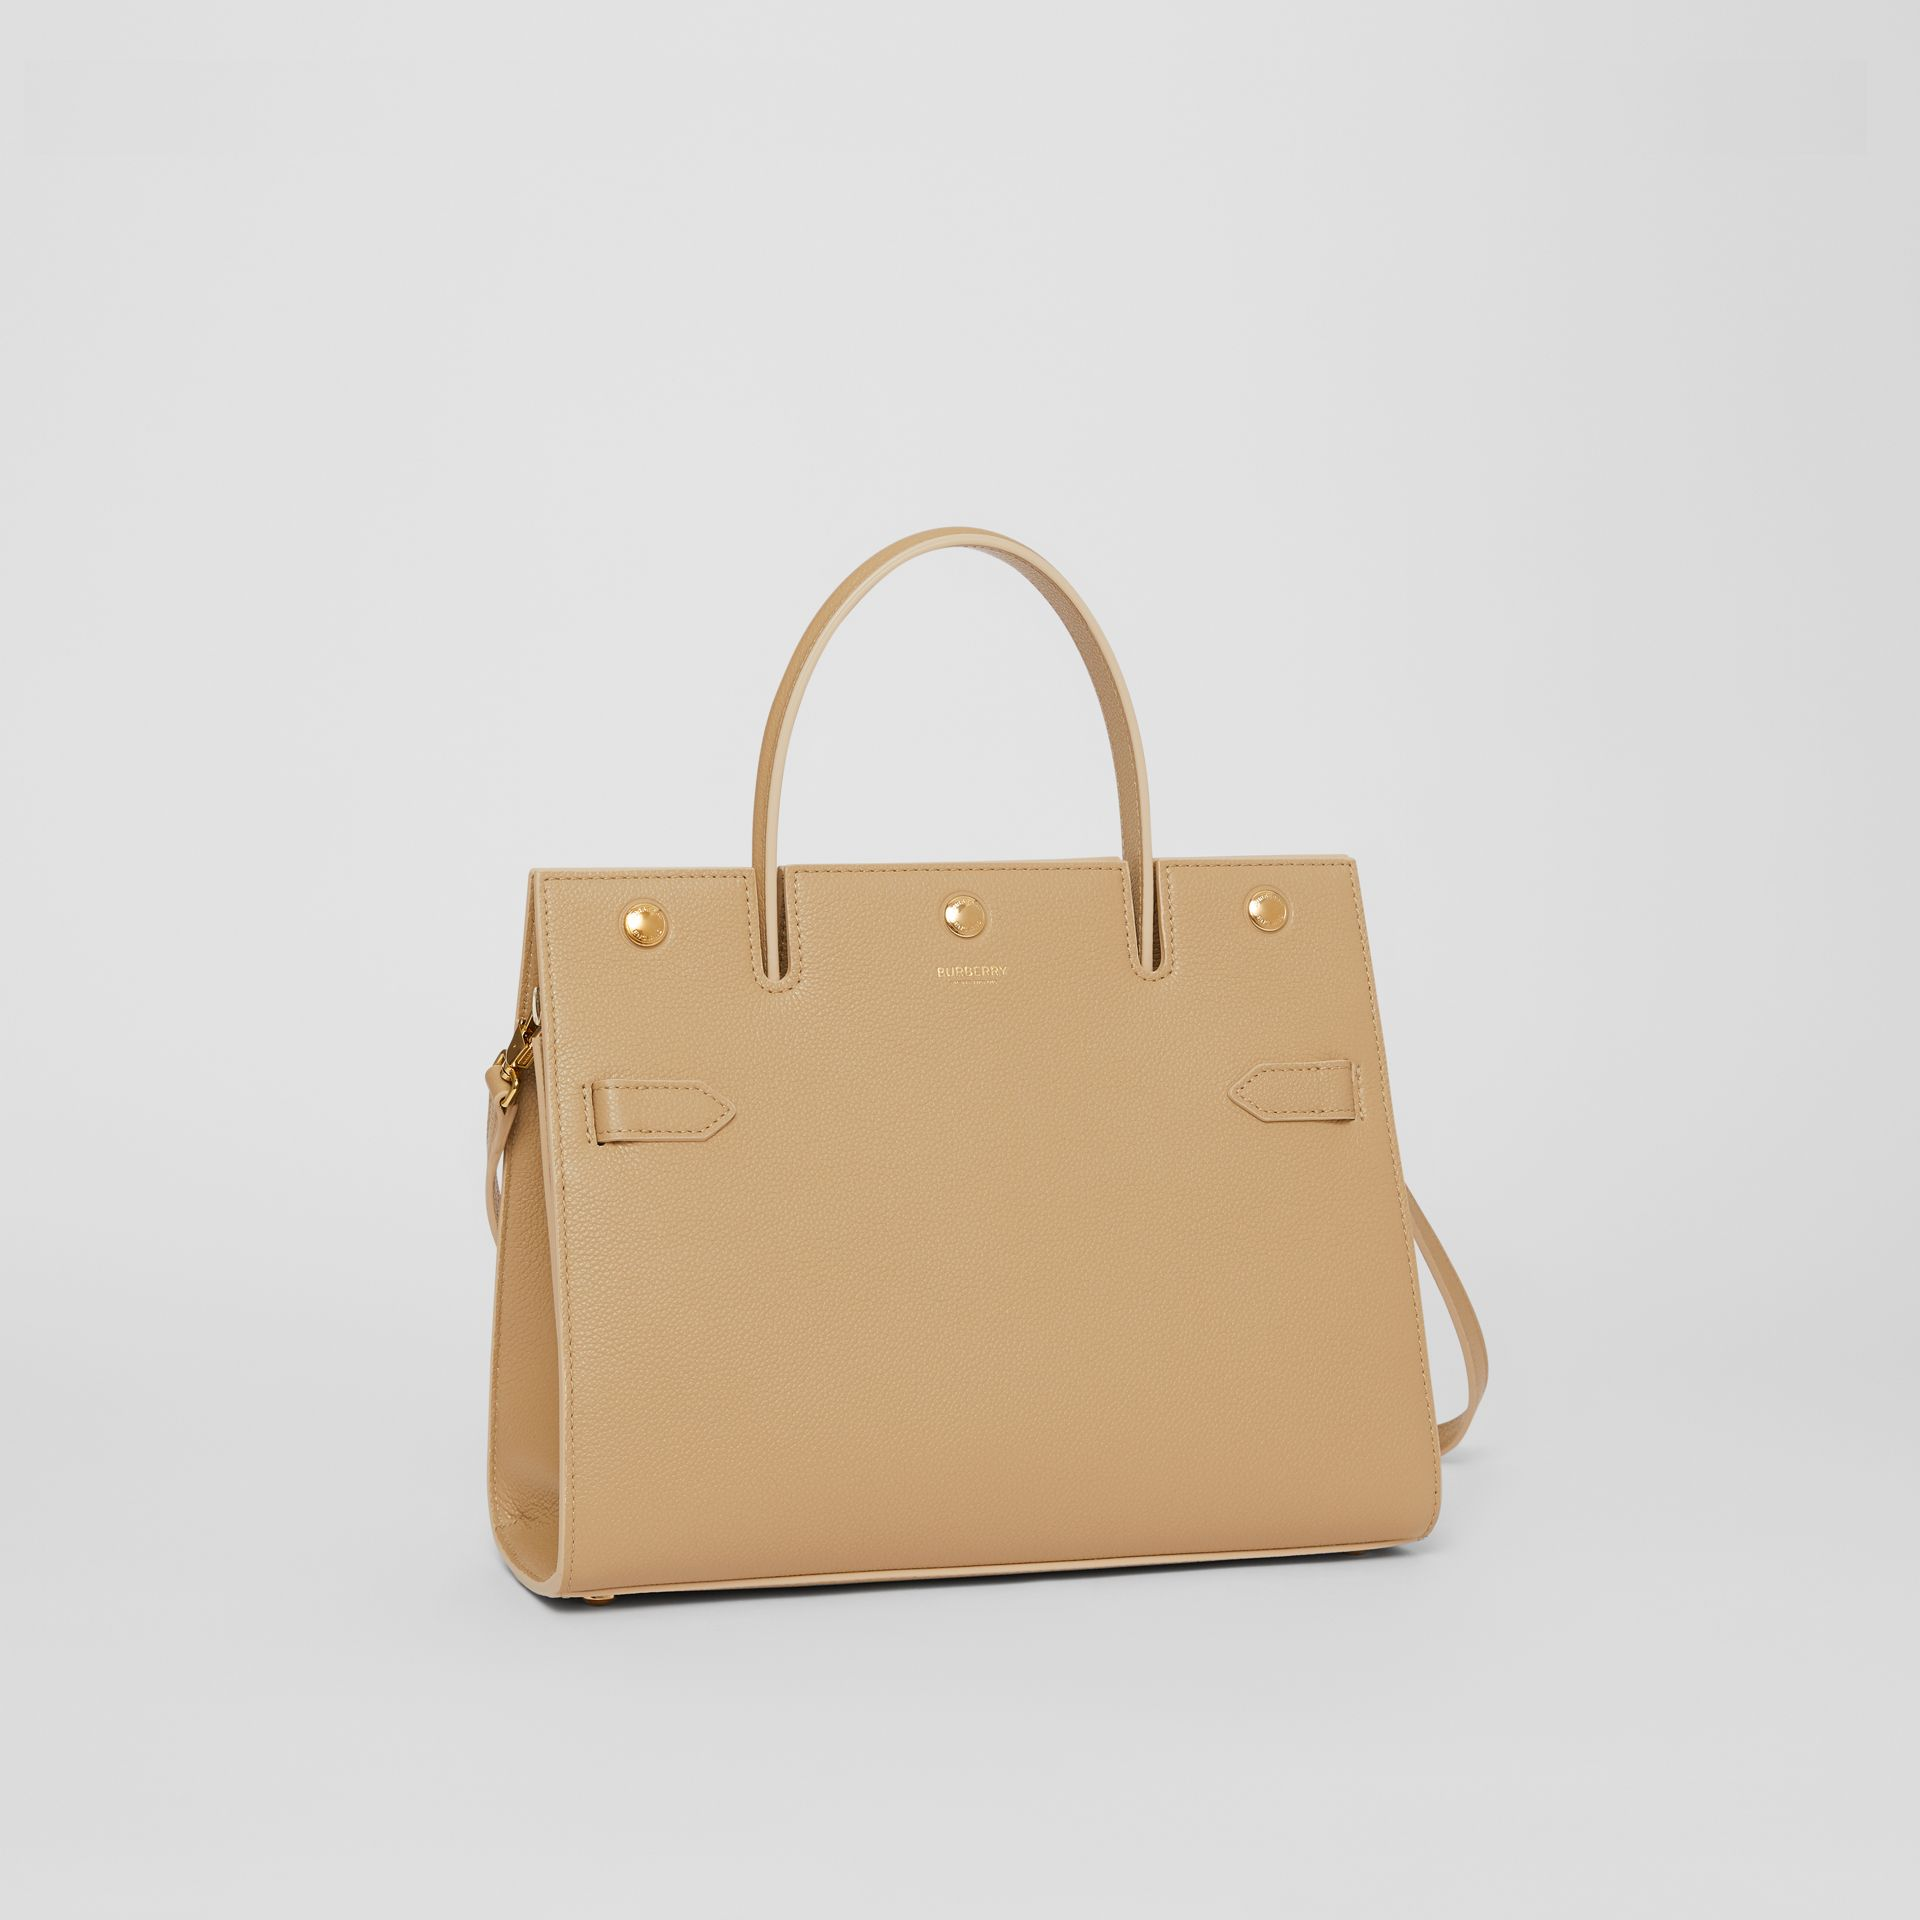 Small Leather Title Bag in Honey - Women | Burberry - gallery image 6